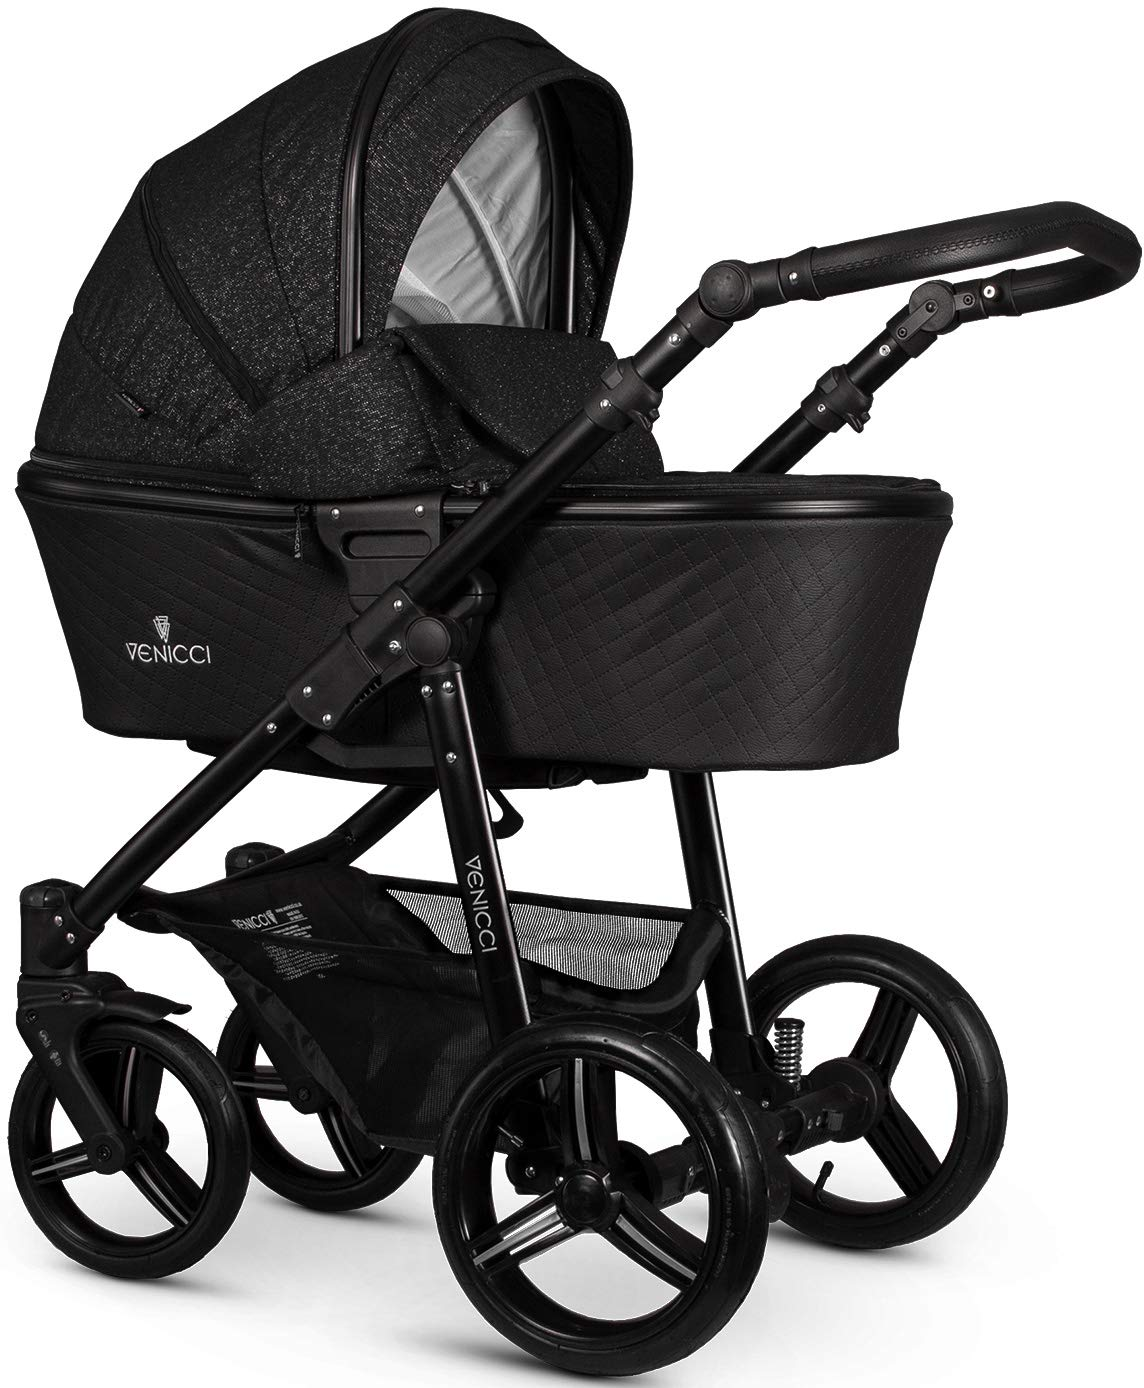 Venicci Shadow 2-in-1 - Starlight Travel System Venicci Also includes: Changing bag, Apron, Rain cover, Mosquito net, Cup holder Carrycot: L 102cm W 61cm H 112 cm Age suitability: From birth to 6 months Seat unit: L 95cm W 61cm H 112cm Age suitability: From 7 to 36 months 1